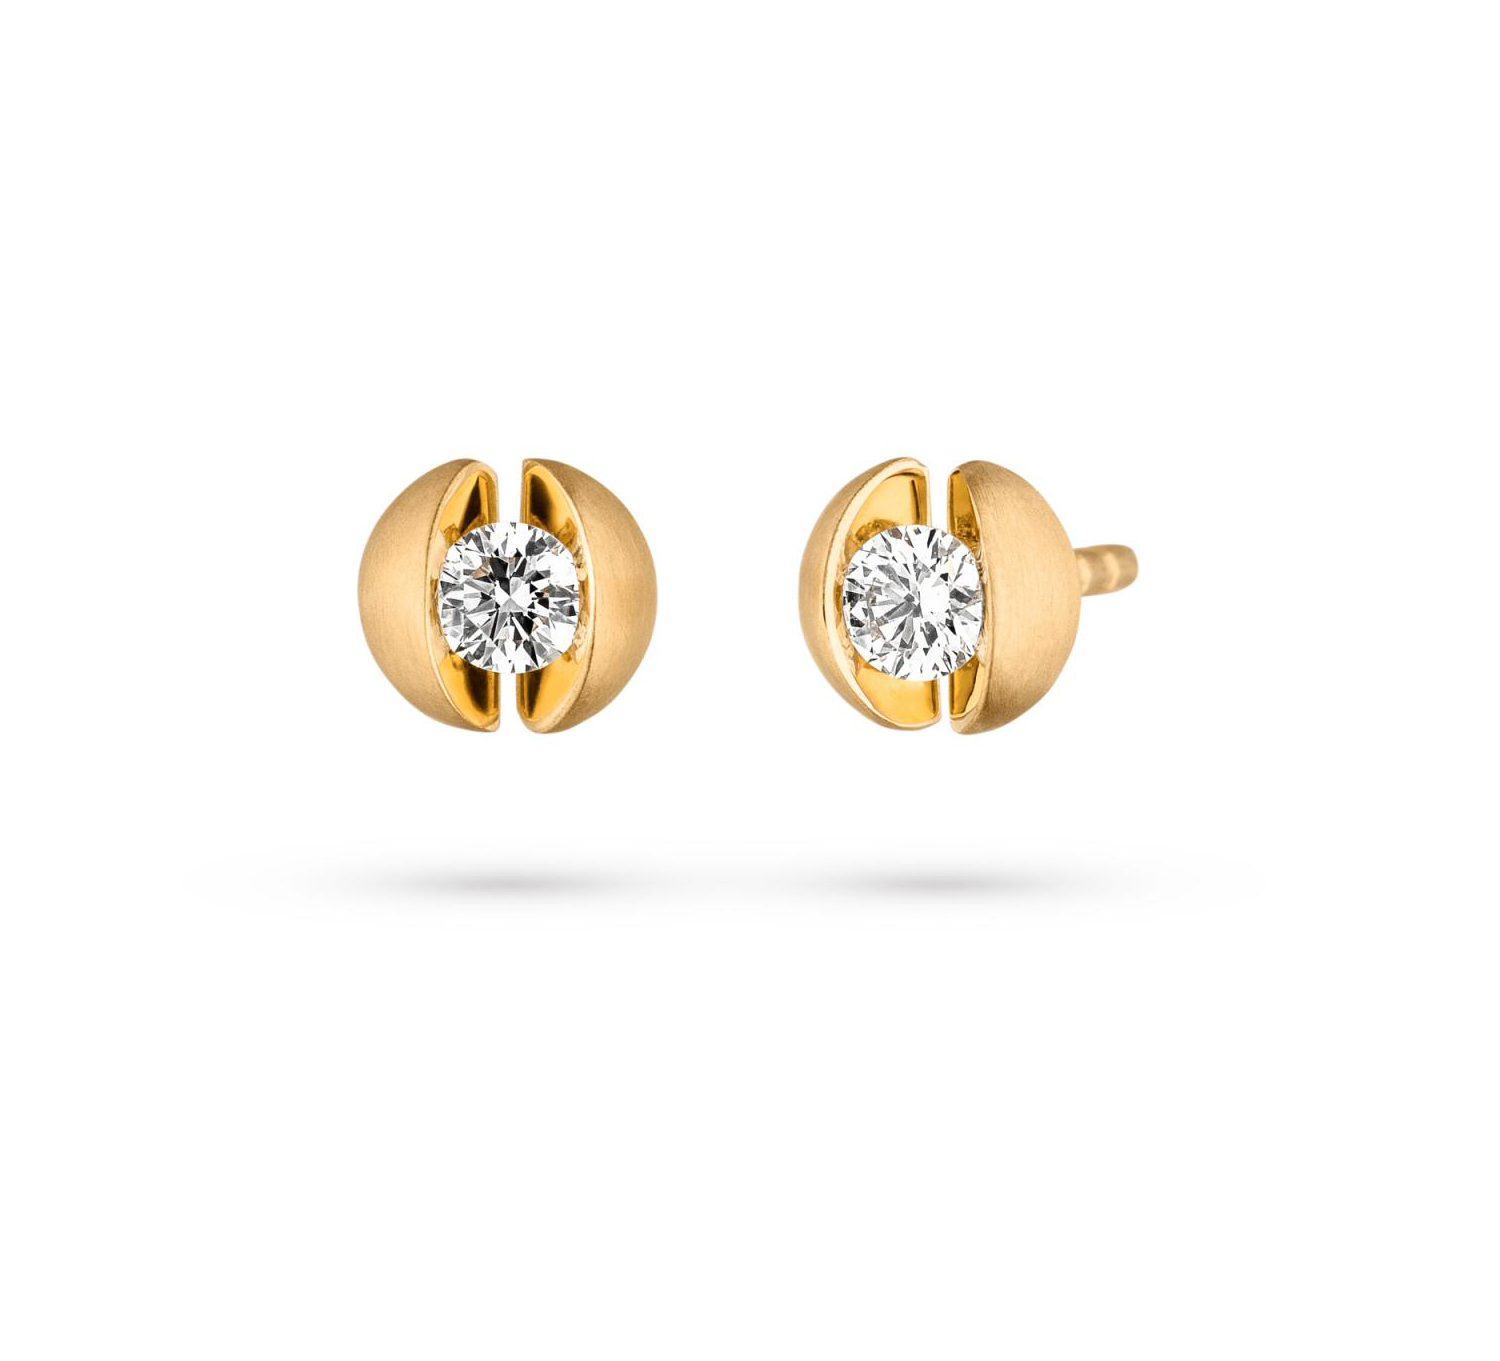 18 carat semi-spherical yellow gold earrings with a diamond between two smooth reflective surfaces.